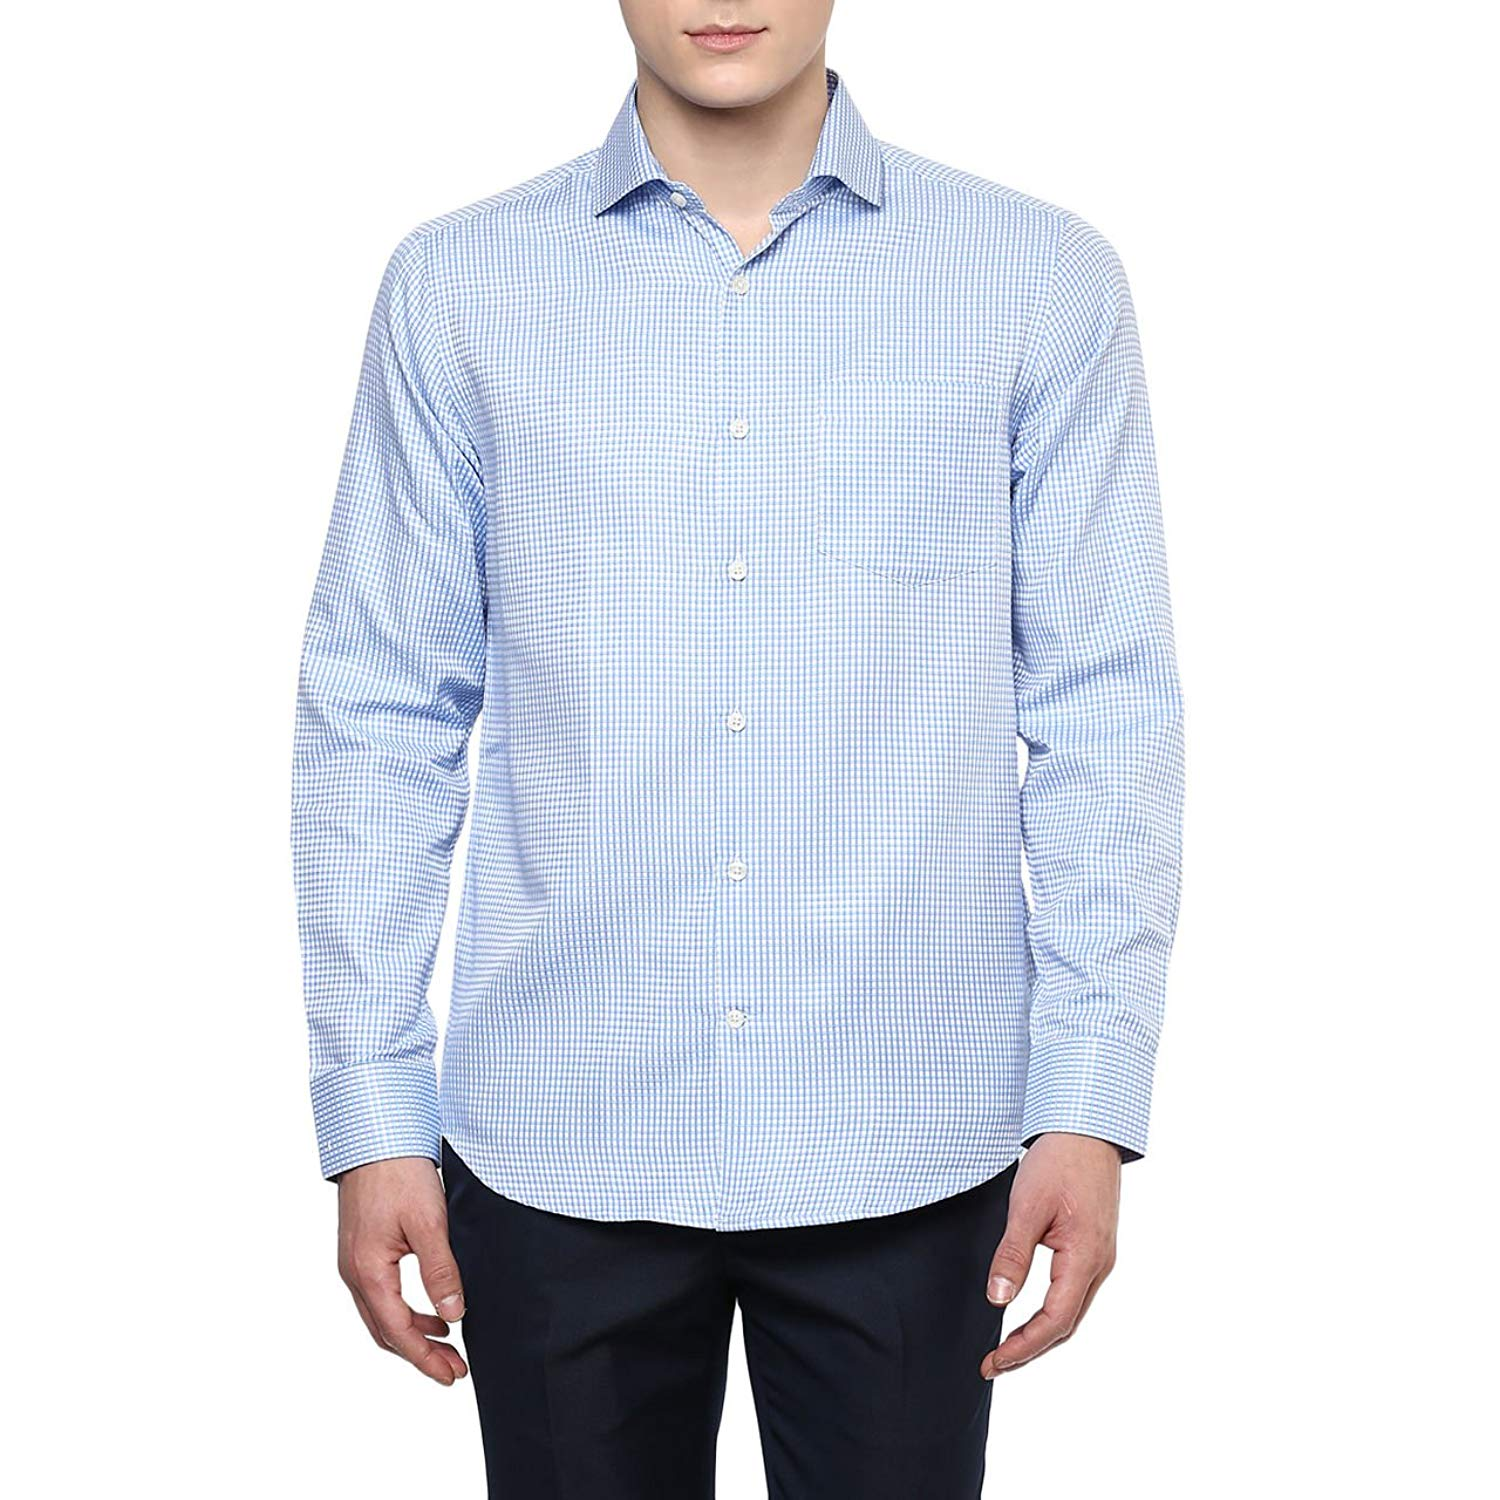 Richard Parker by Pantaloons Shirts Upto 70% Discount Starts Rs.239